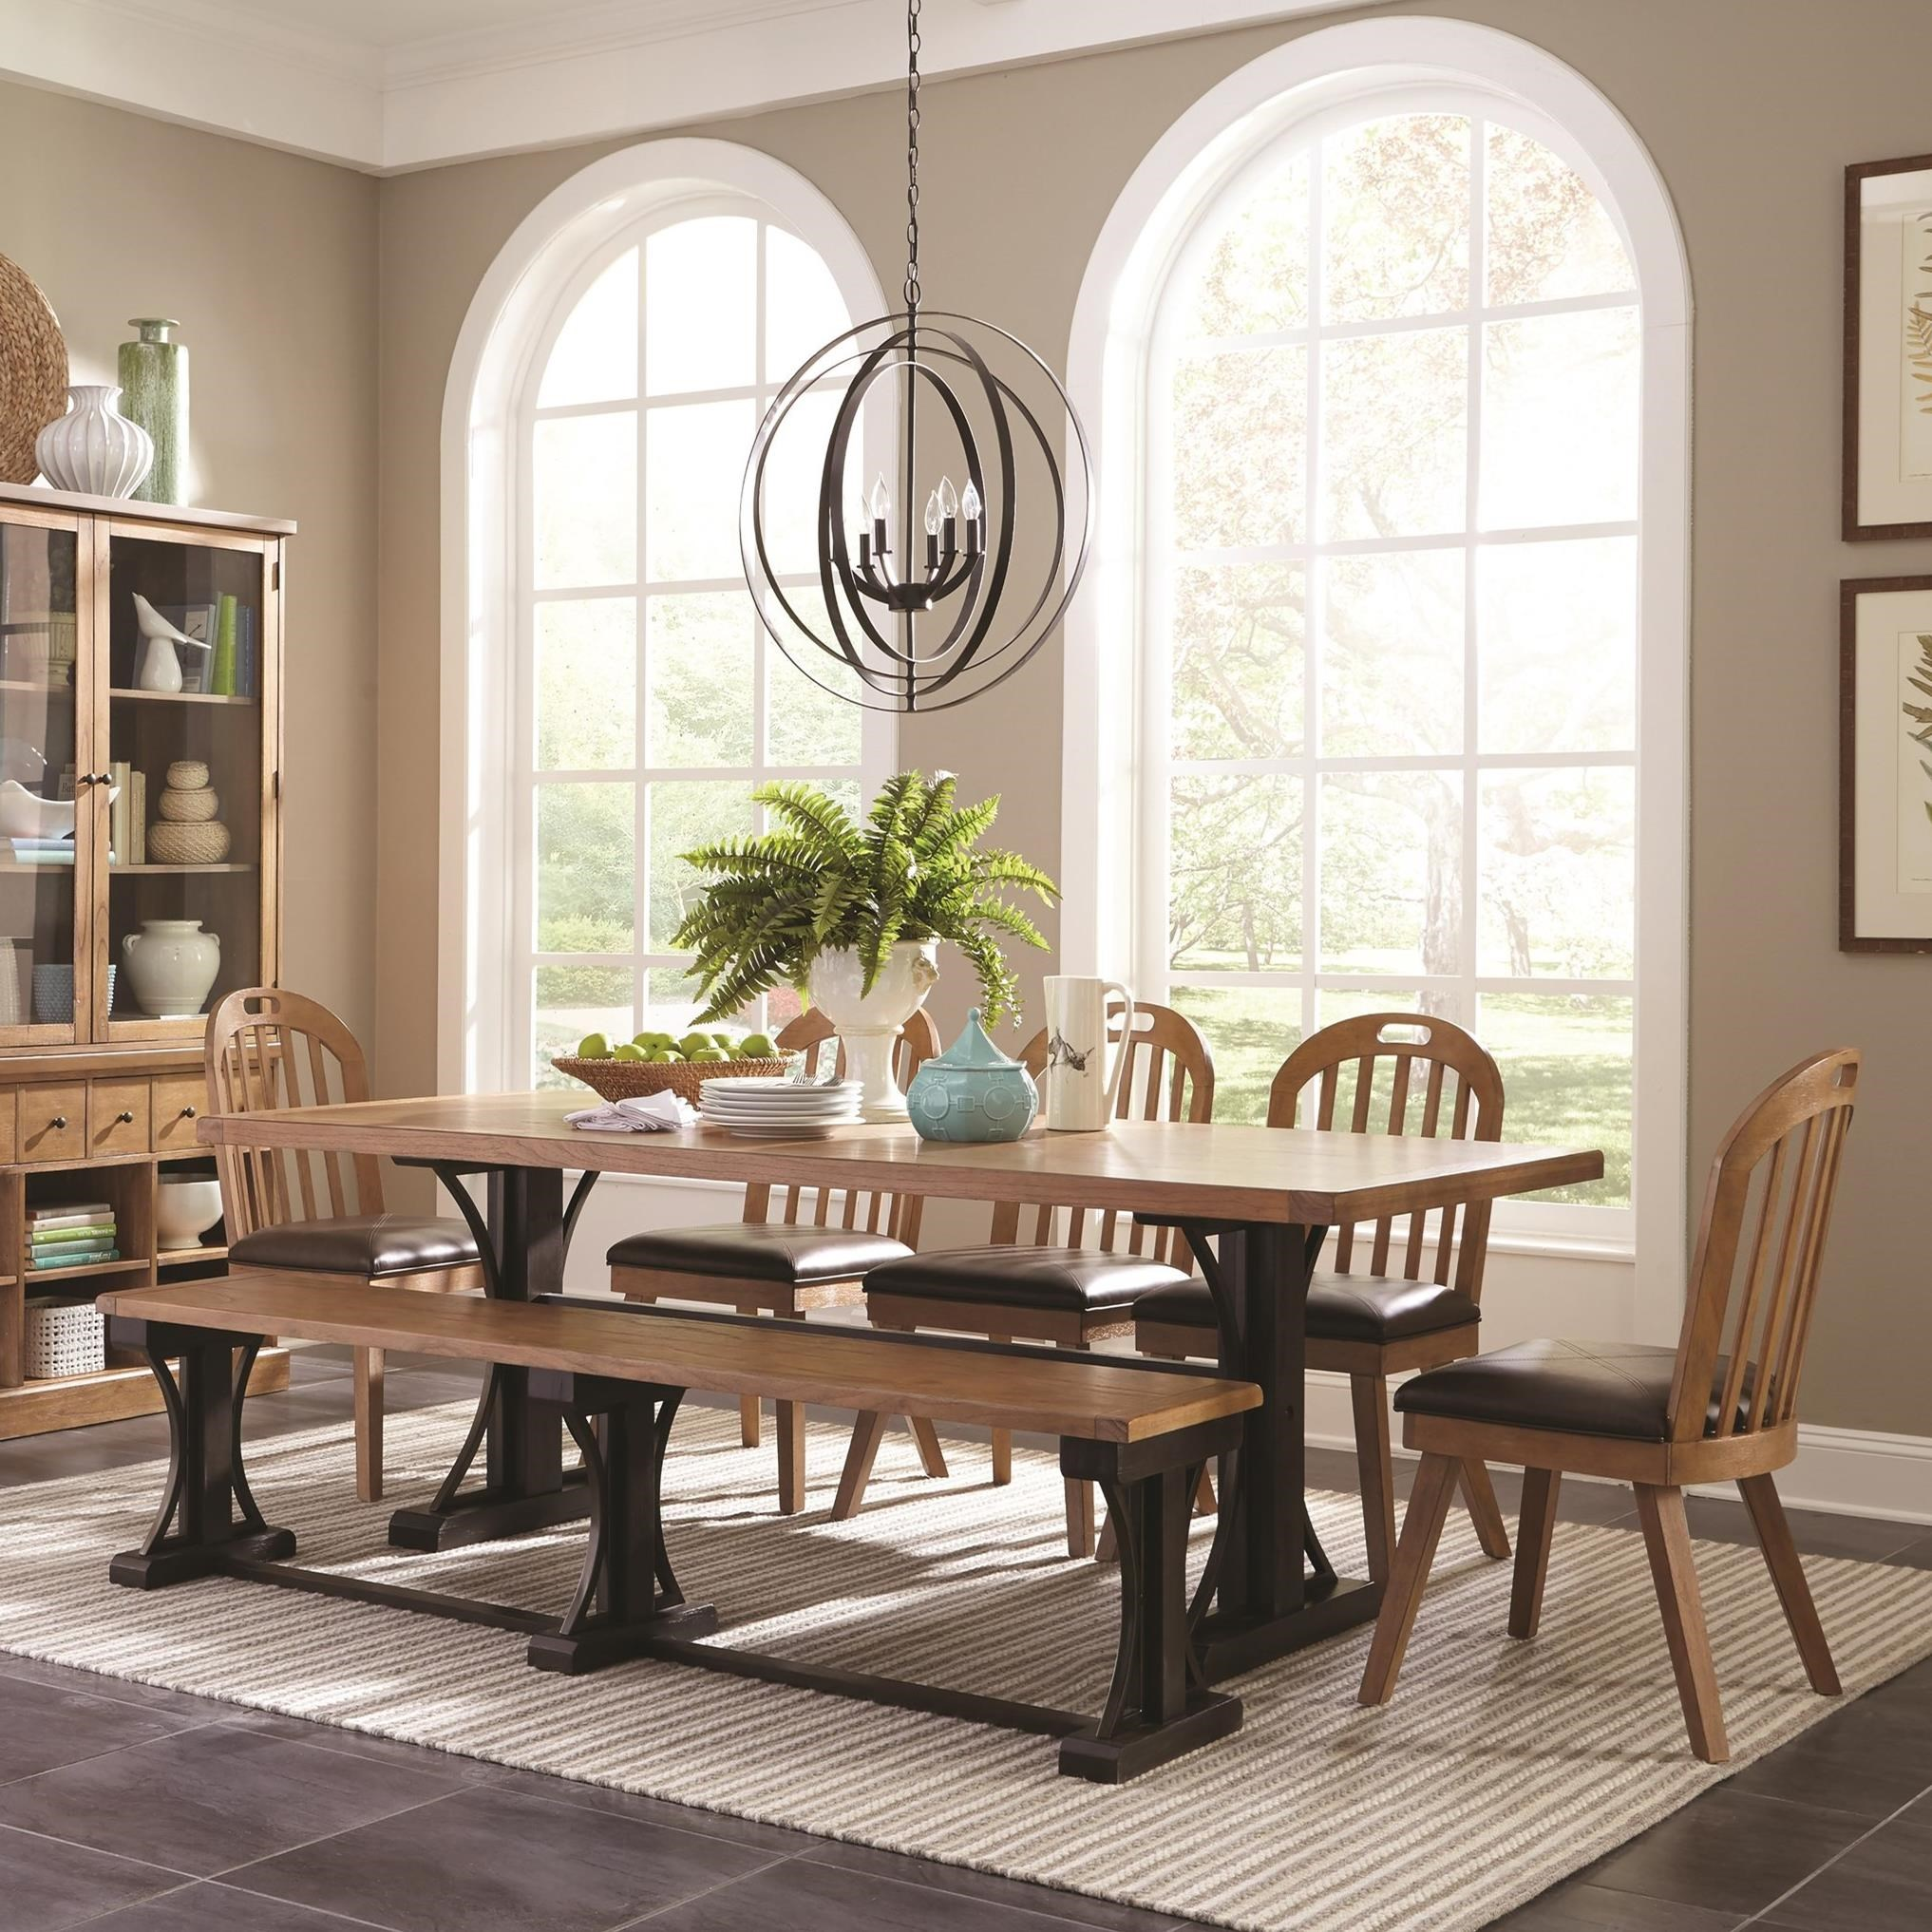 fit room furniture farmhouse chairs dining personal city living your that style